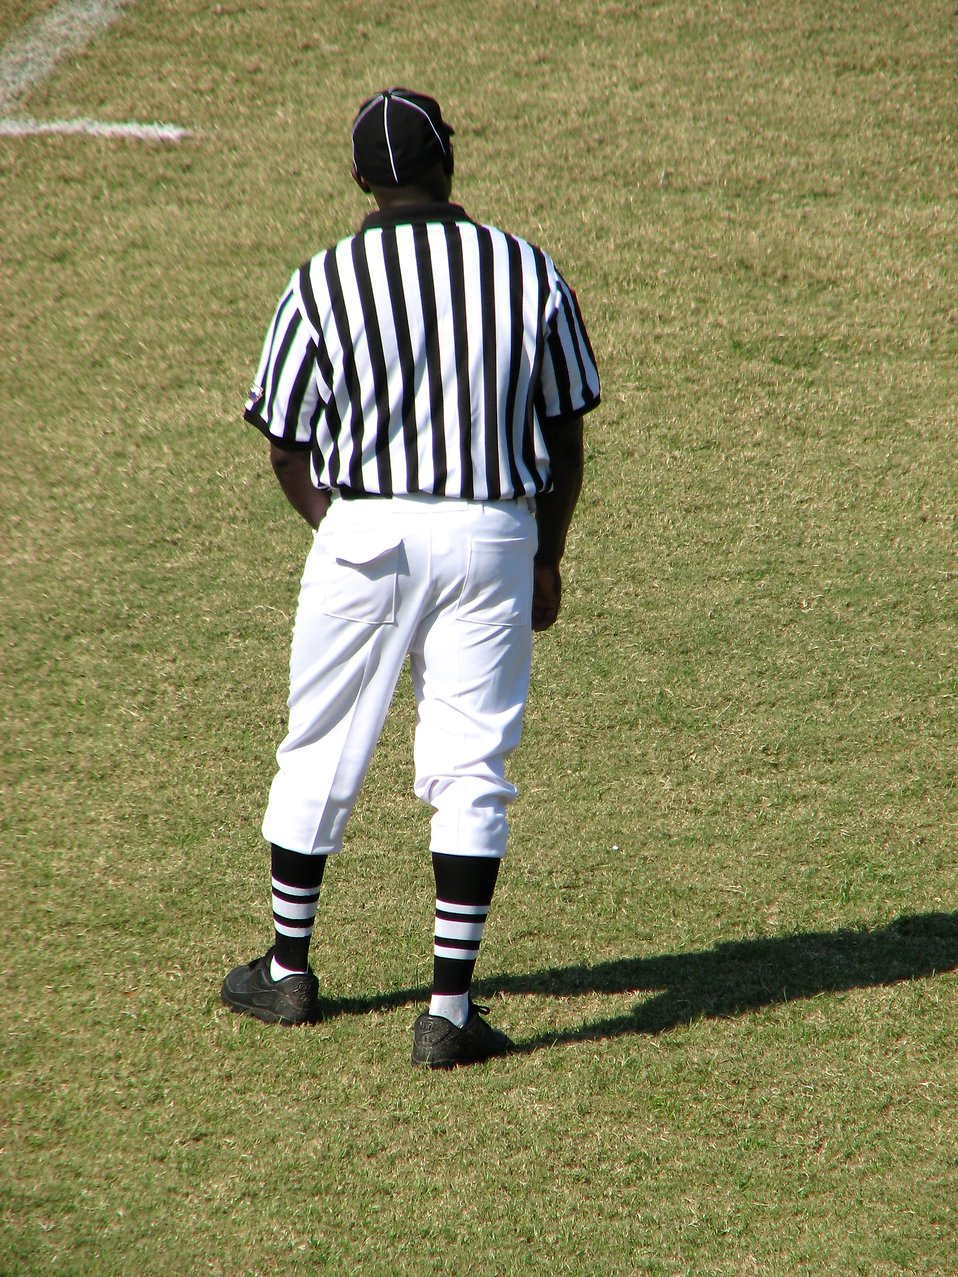 A football referee on a field : Free Stock Photo